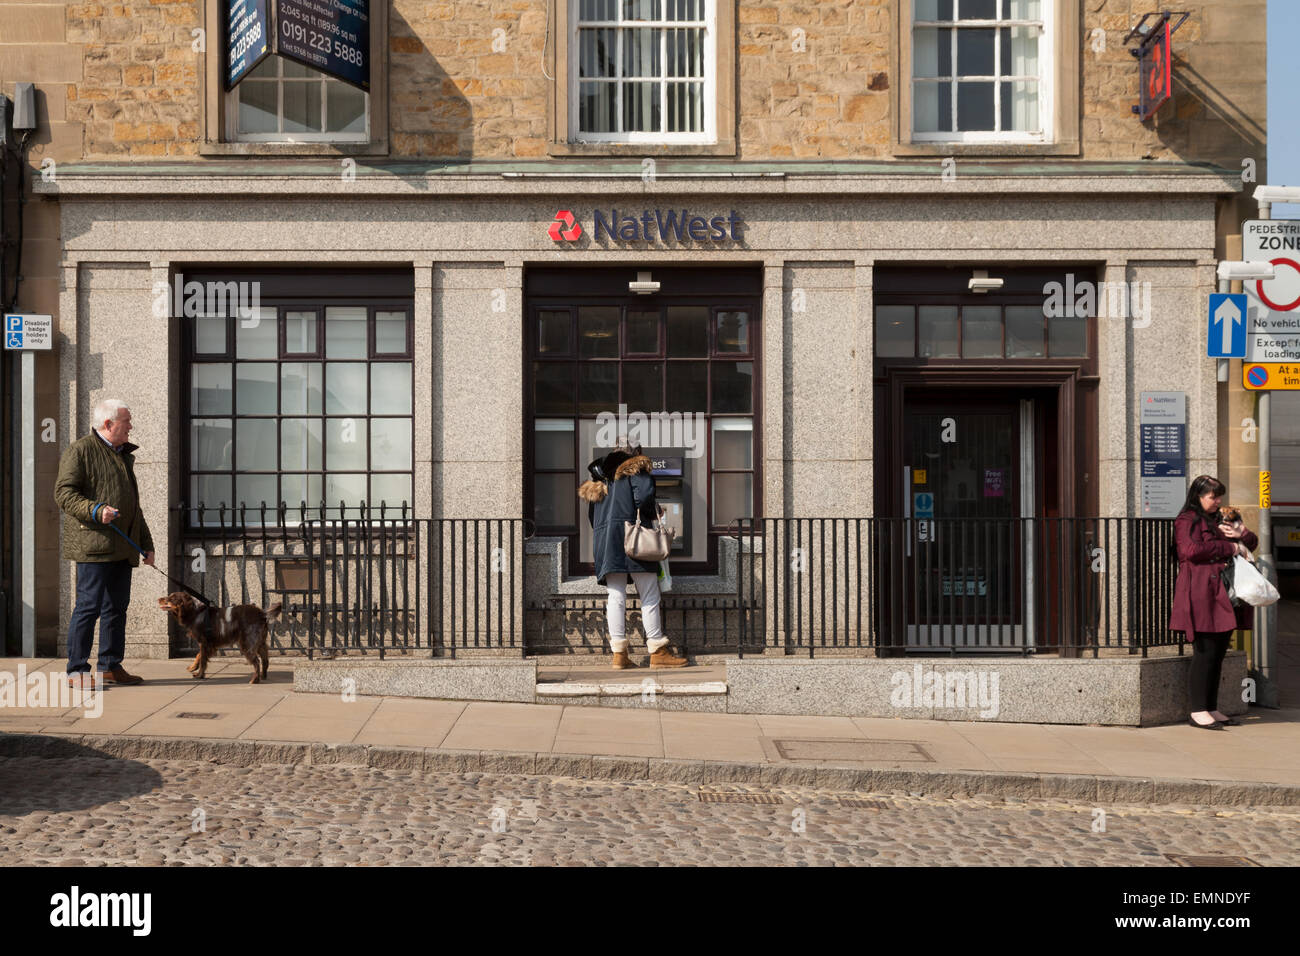 The exterior of the NatWest Bank, the market square, Richmond, Yorkshire, UK - Stock Image